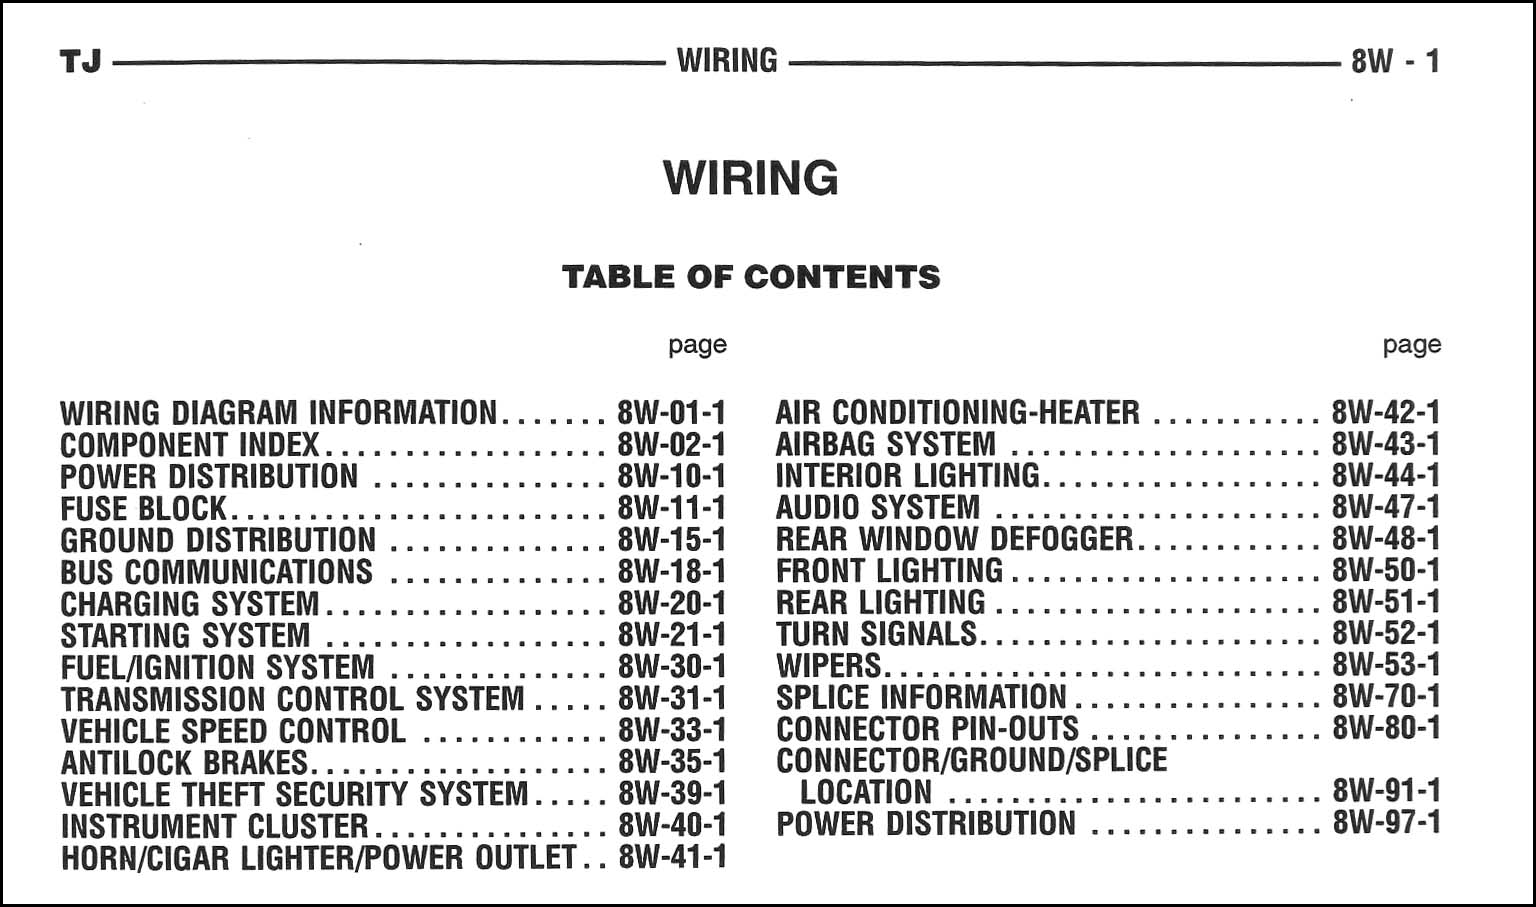 2005JeepWranglerOWD TOC?resize=665%2C393 wiring diagram for 2005 jeep wrangler readingrat net 2005 jeep wrangler pcm wiring diagram at crackthecode.co